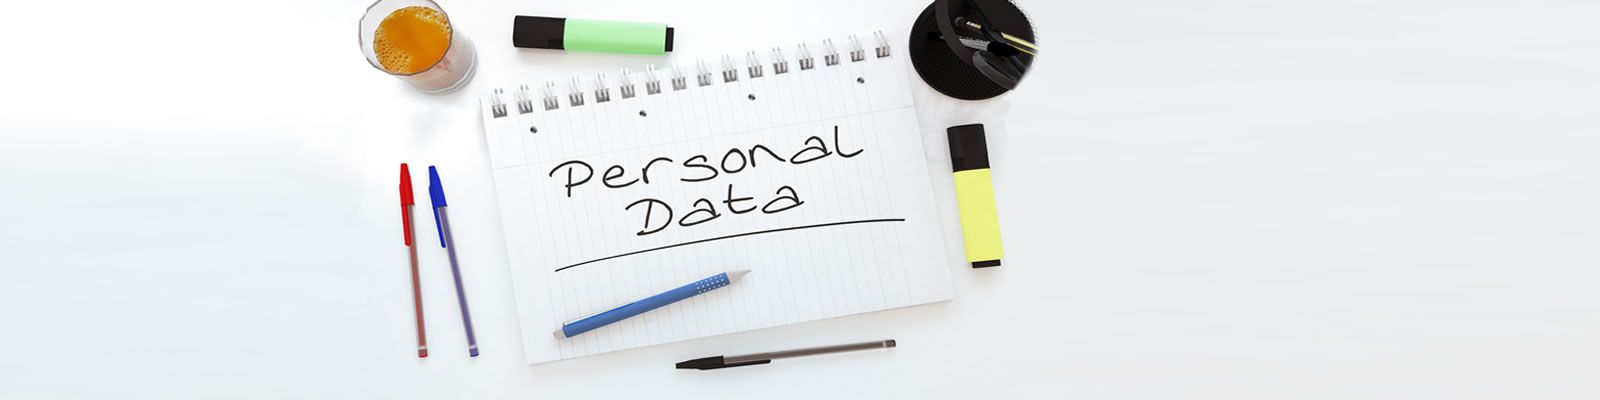 personal-data-privacy